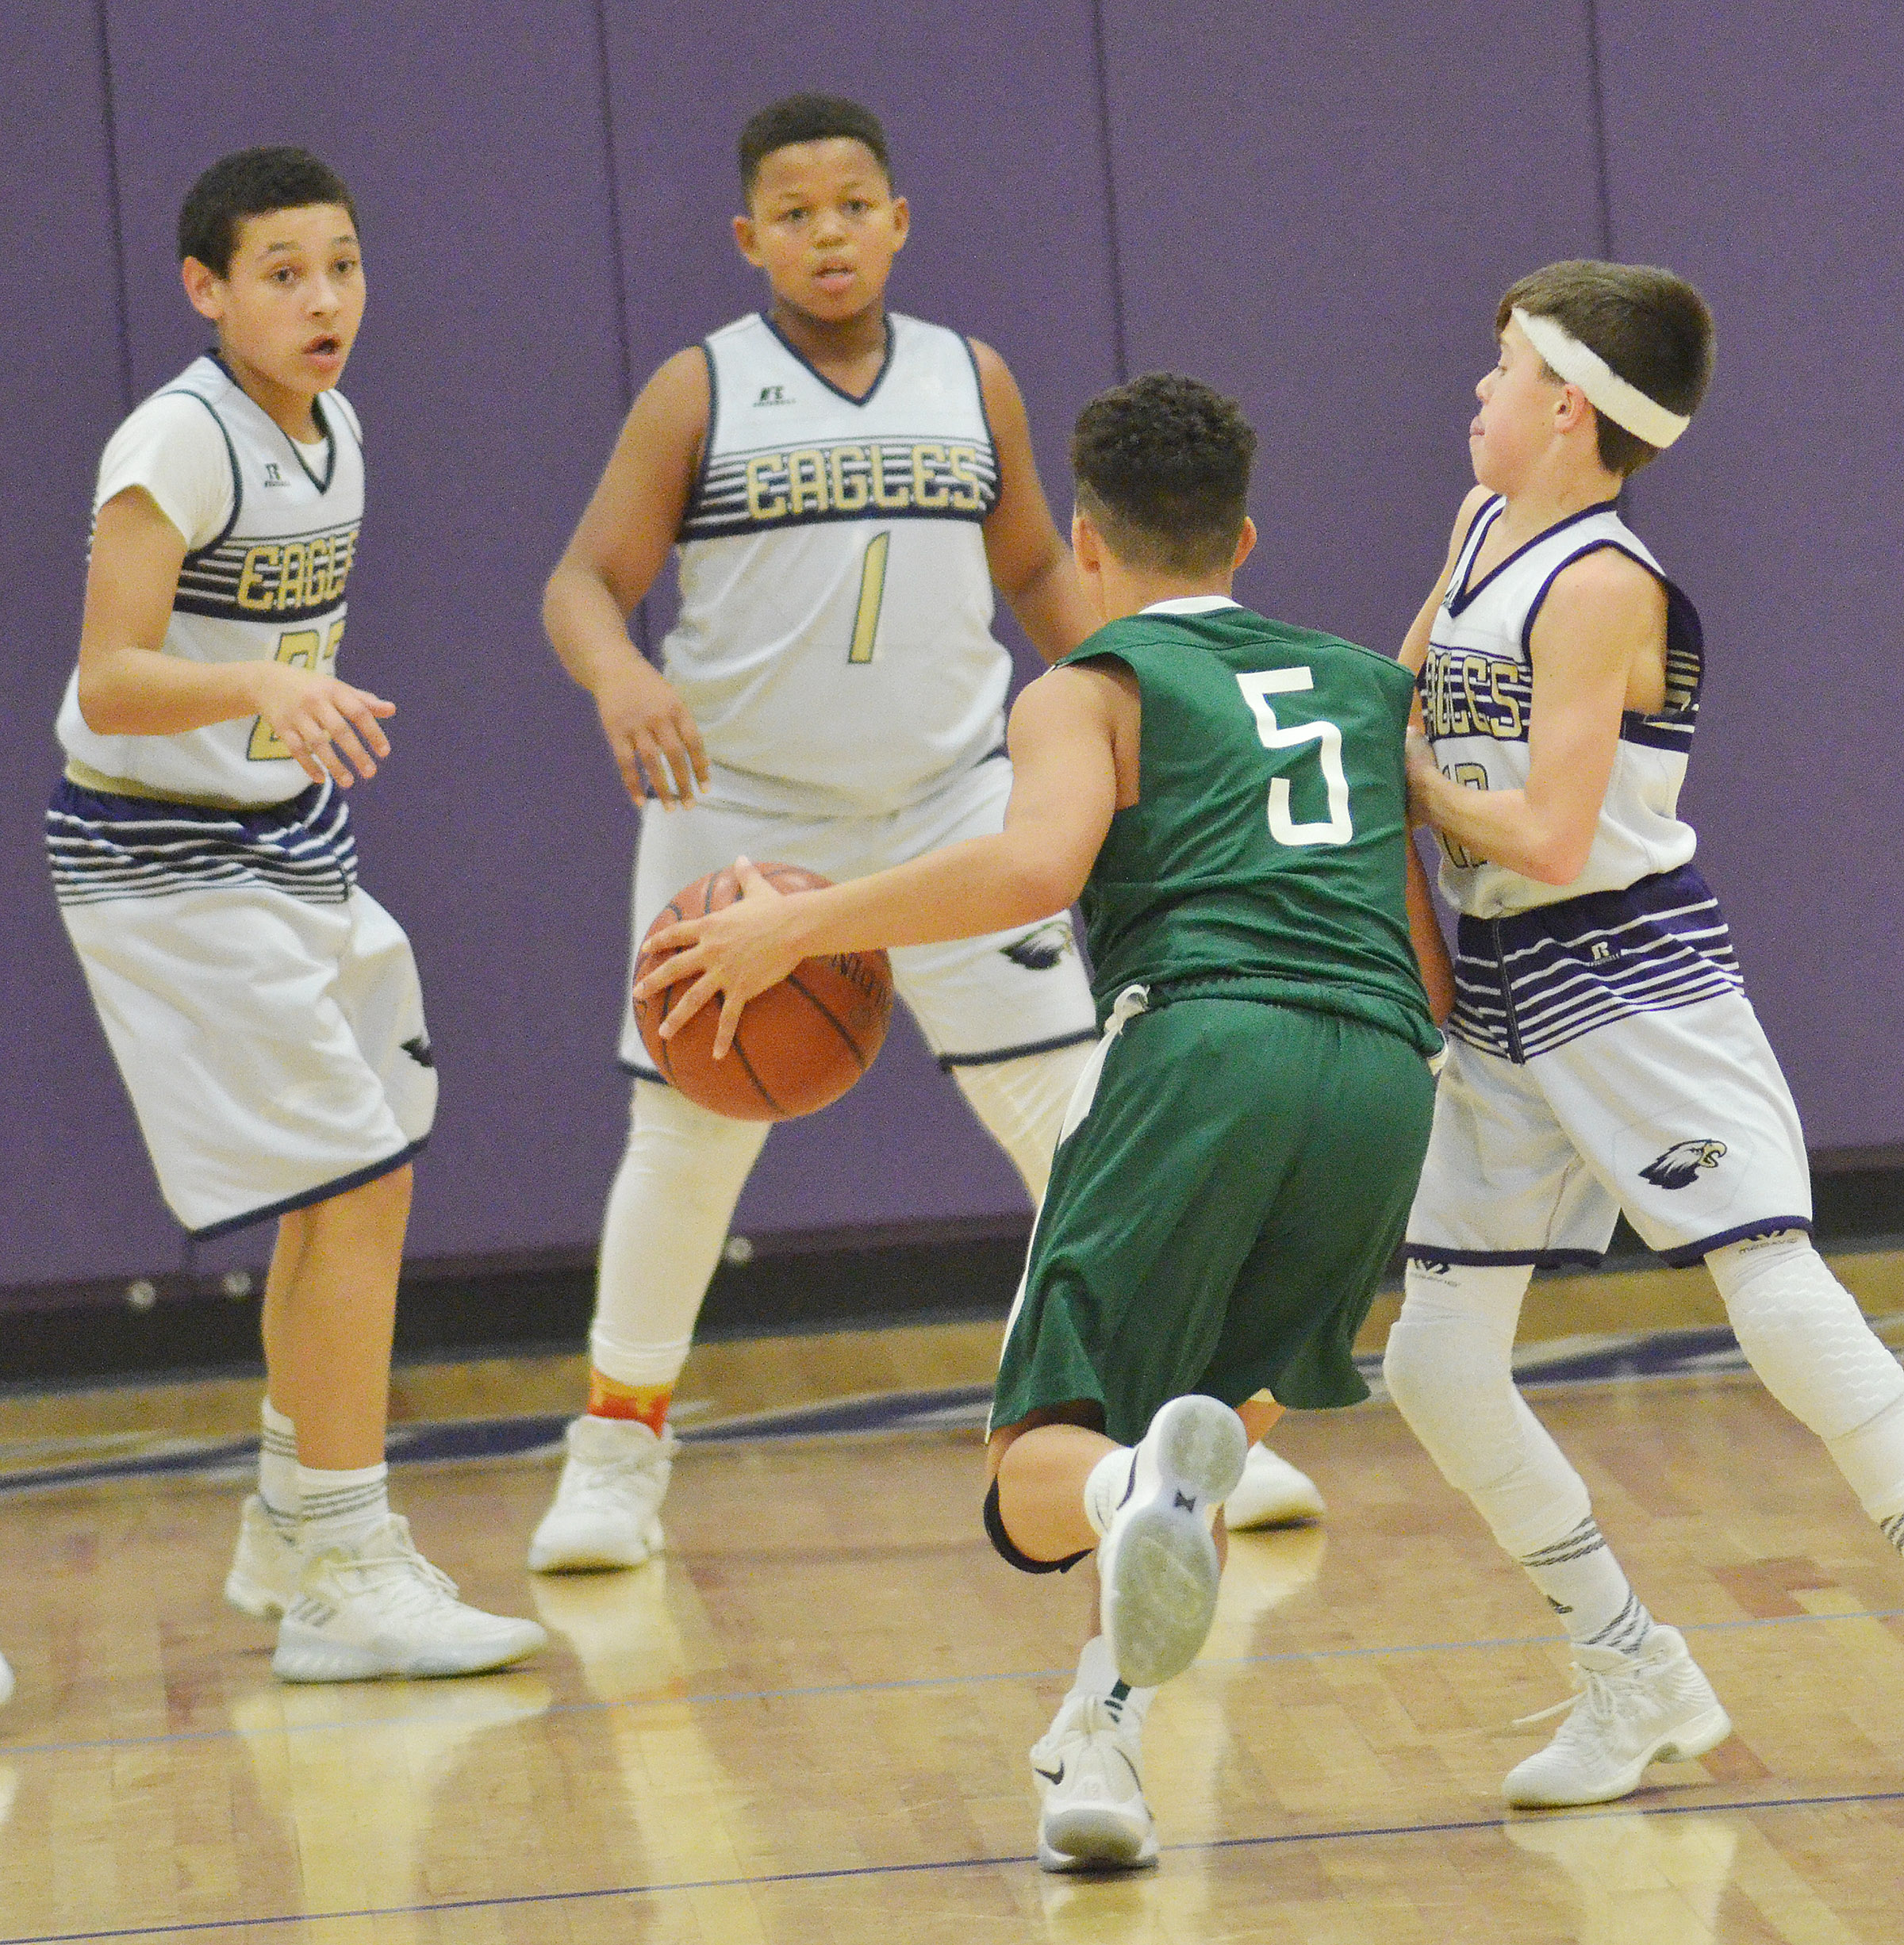 From left, CMS eighth-grader Brice Spaw and seventh-graders Keondre Weathers and Chase Hord play defense.